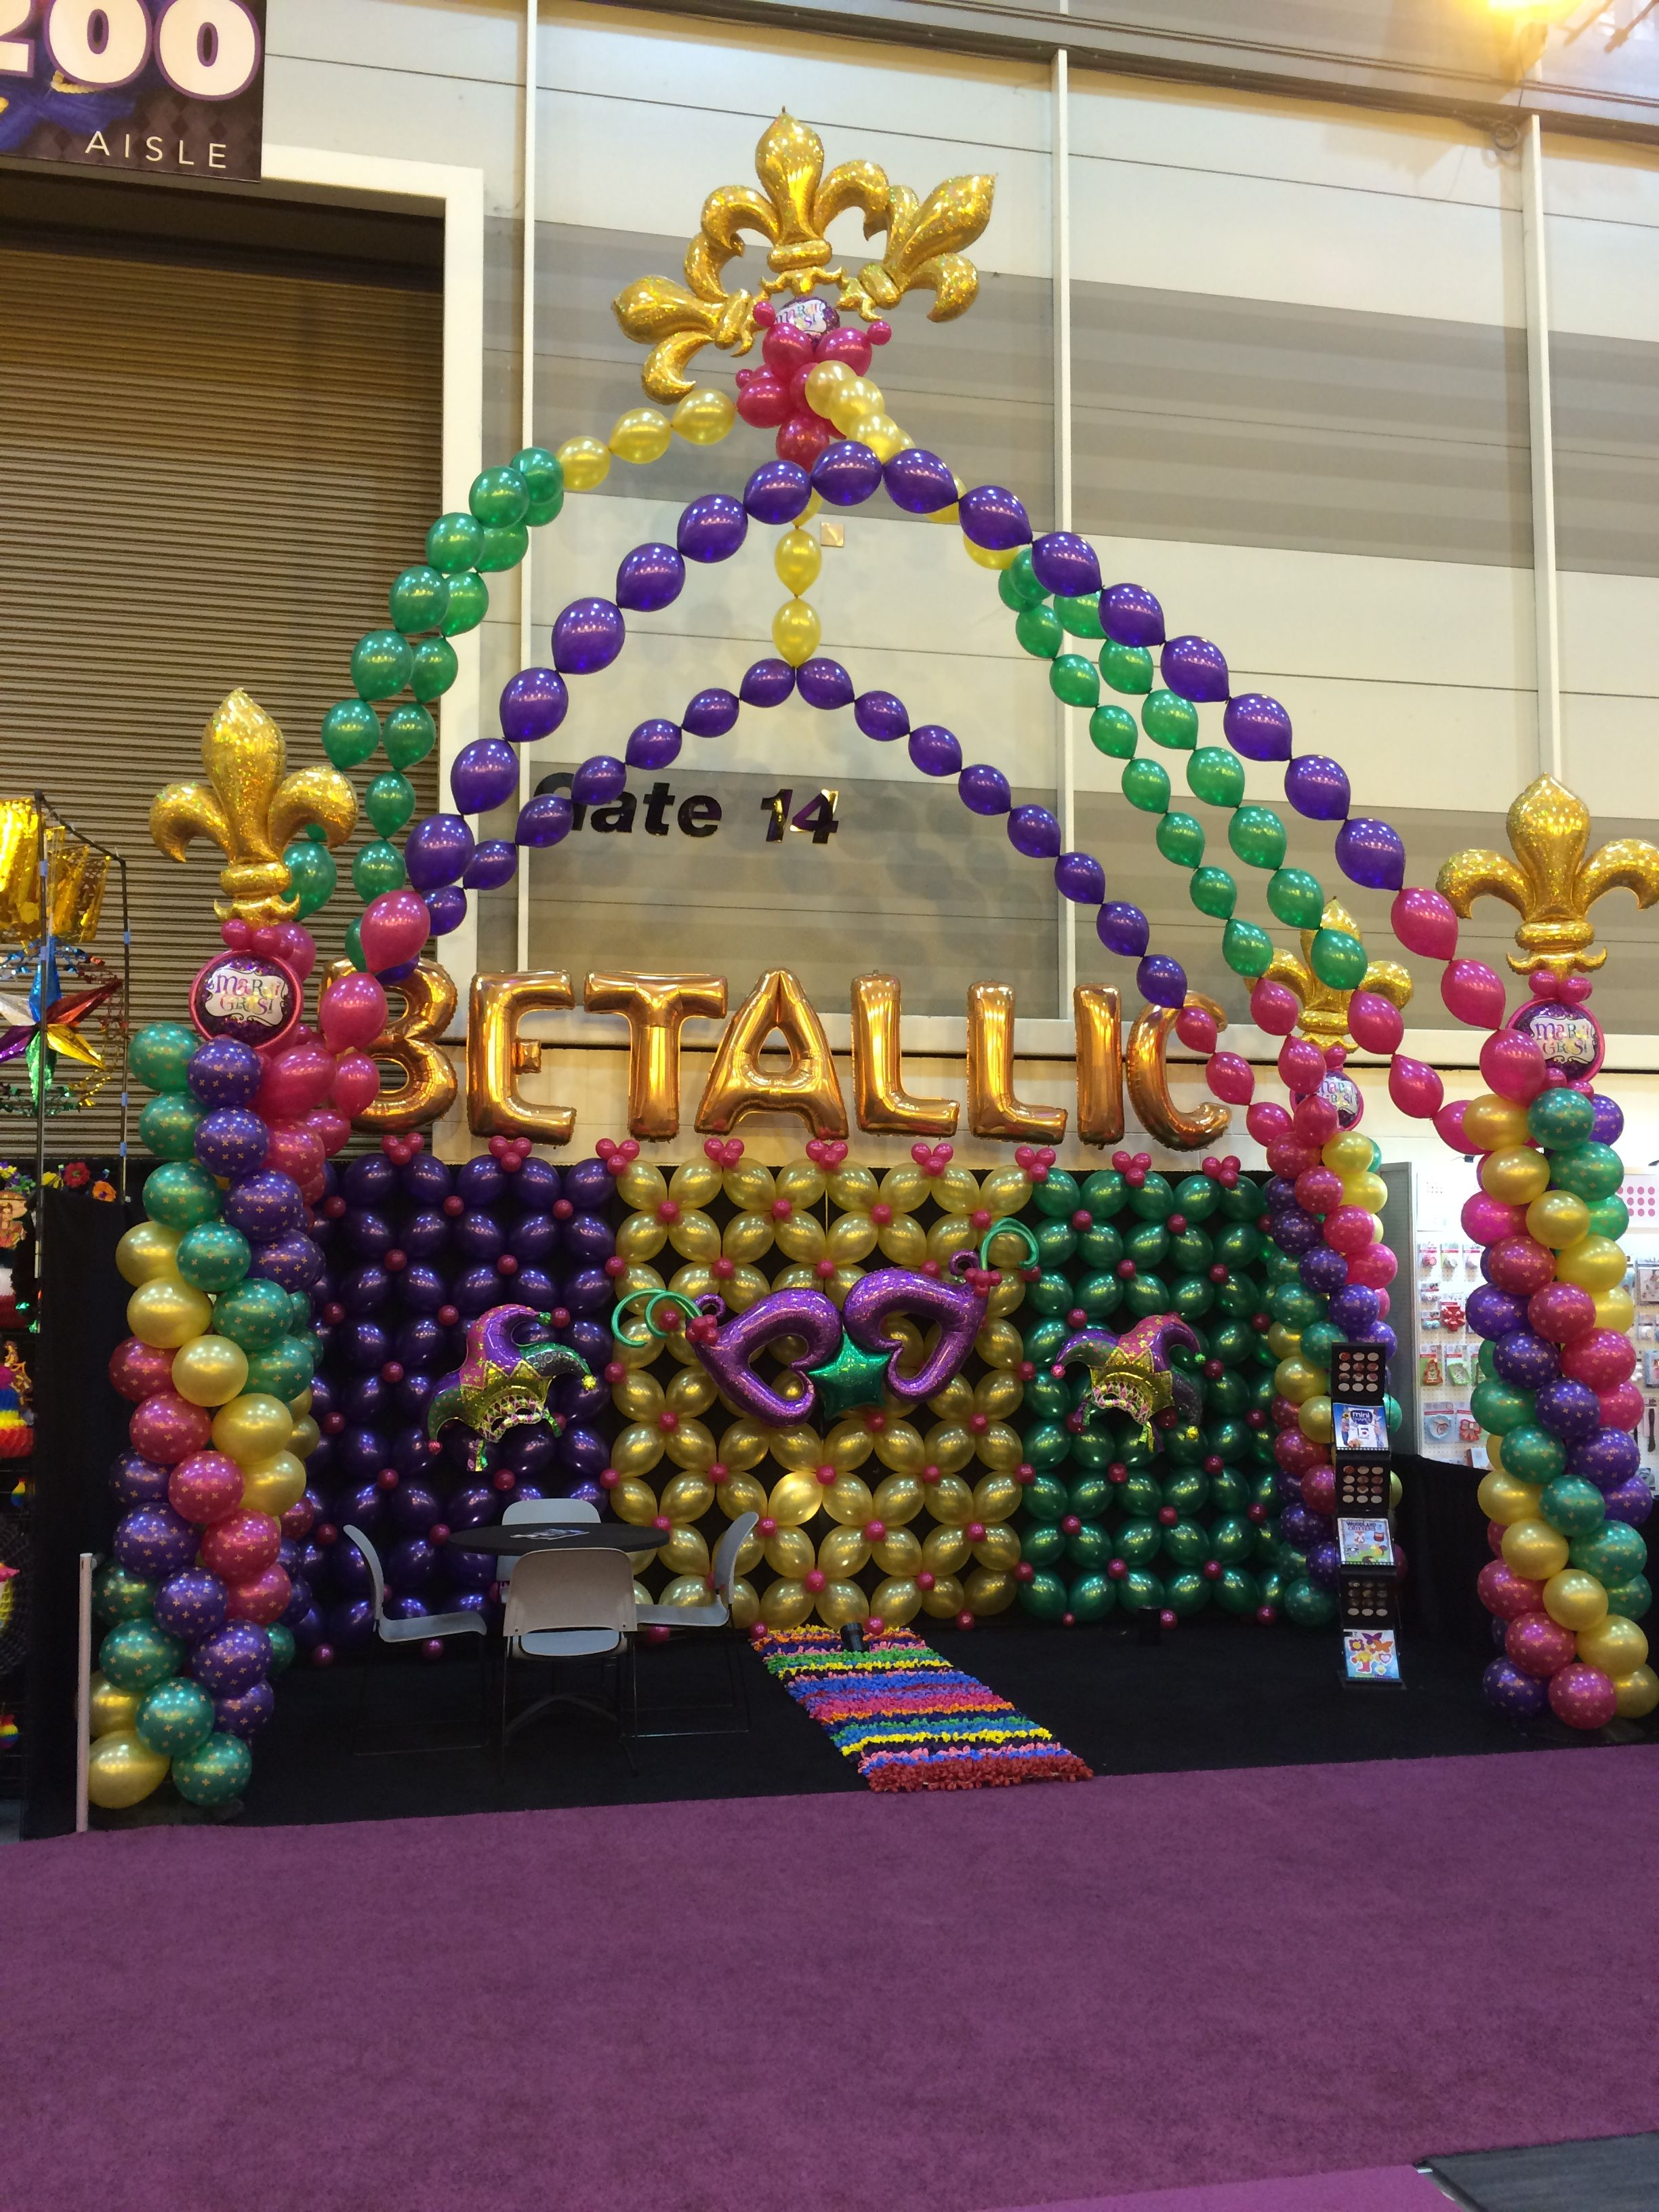 Halloween & Party Expo -2020 Our Mardi Gras themed booth at the Halloween & Party Expo. #hpe15